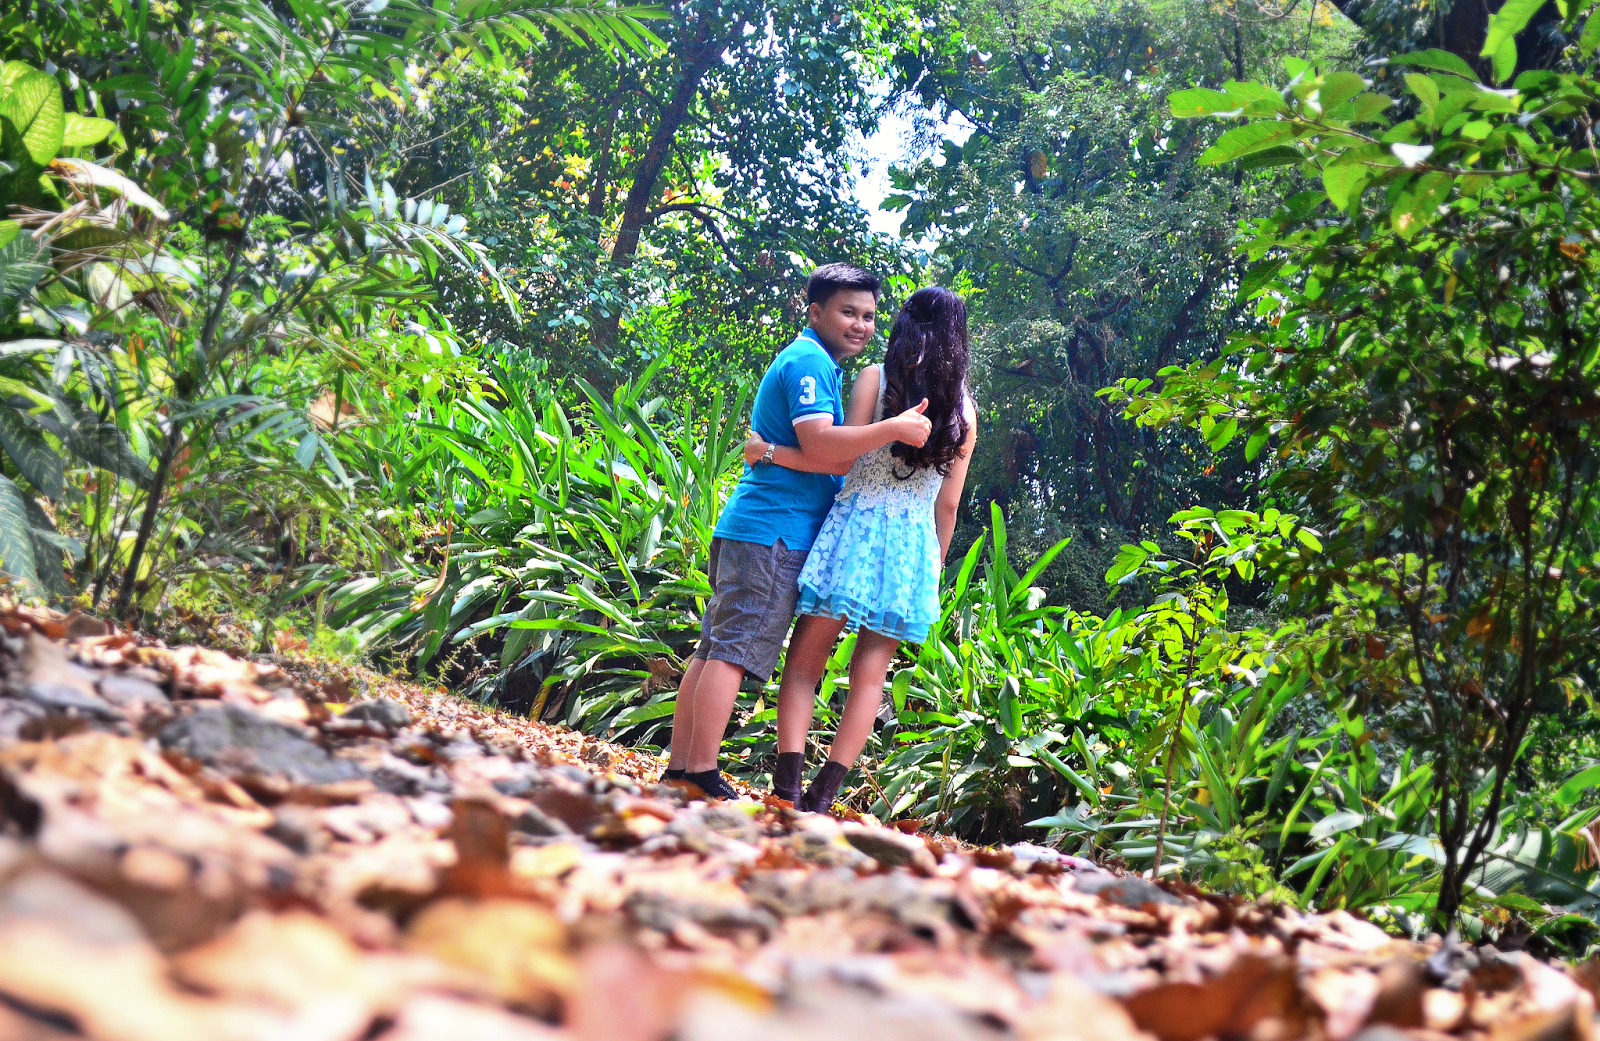 Prettythrifty pre nup photoshoot at la mesa eco park - La mesa eco park swimming pool photos ...